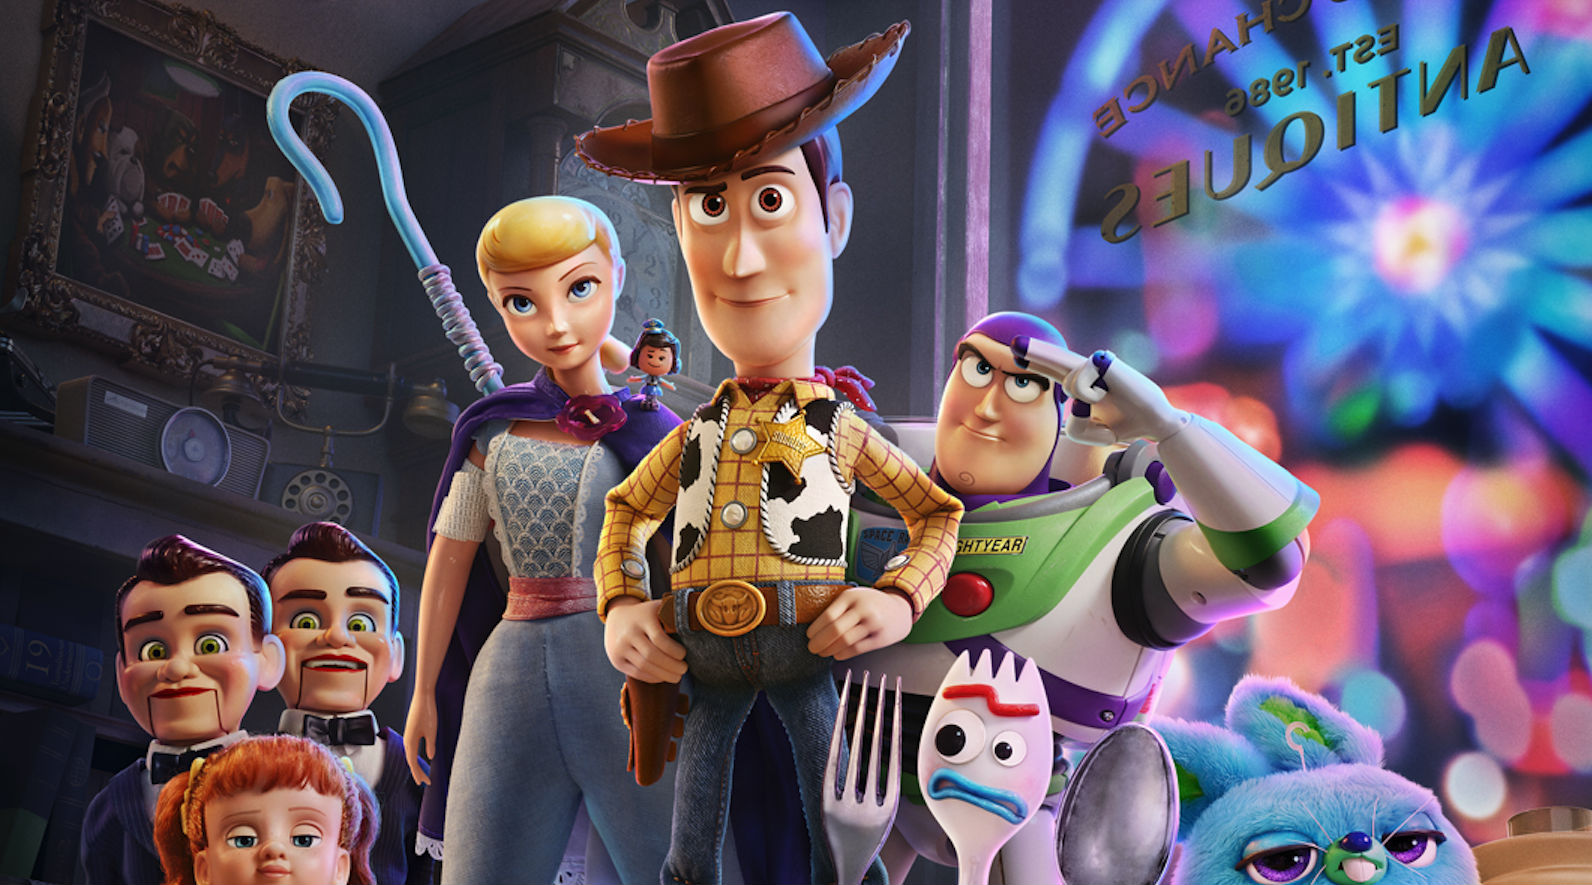 Toy Story 4, Disney/Pixar, June 21